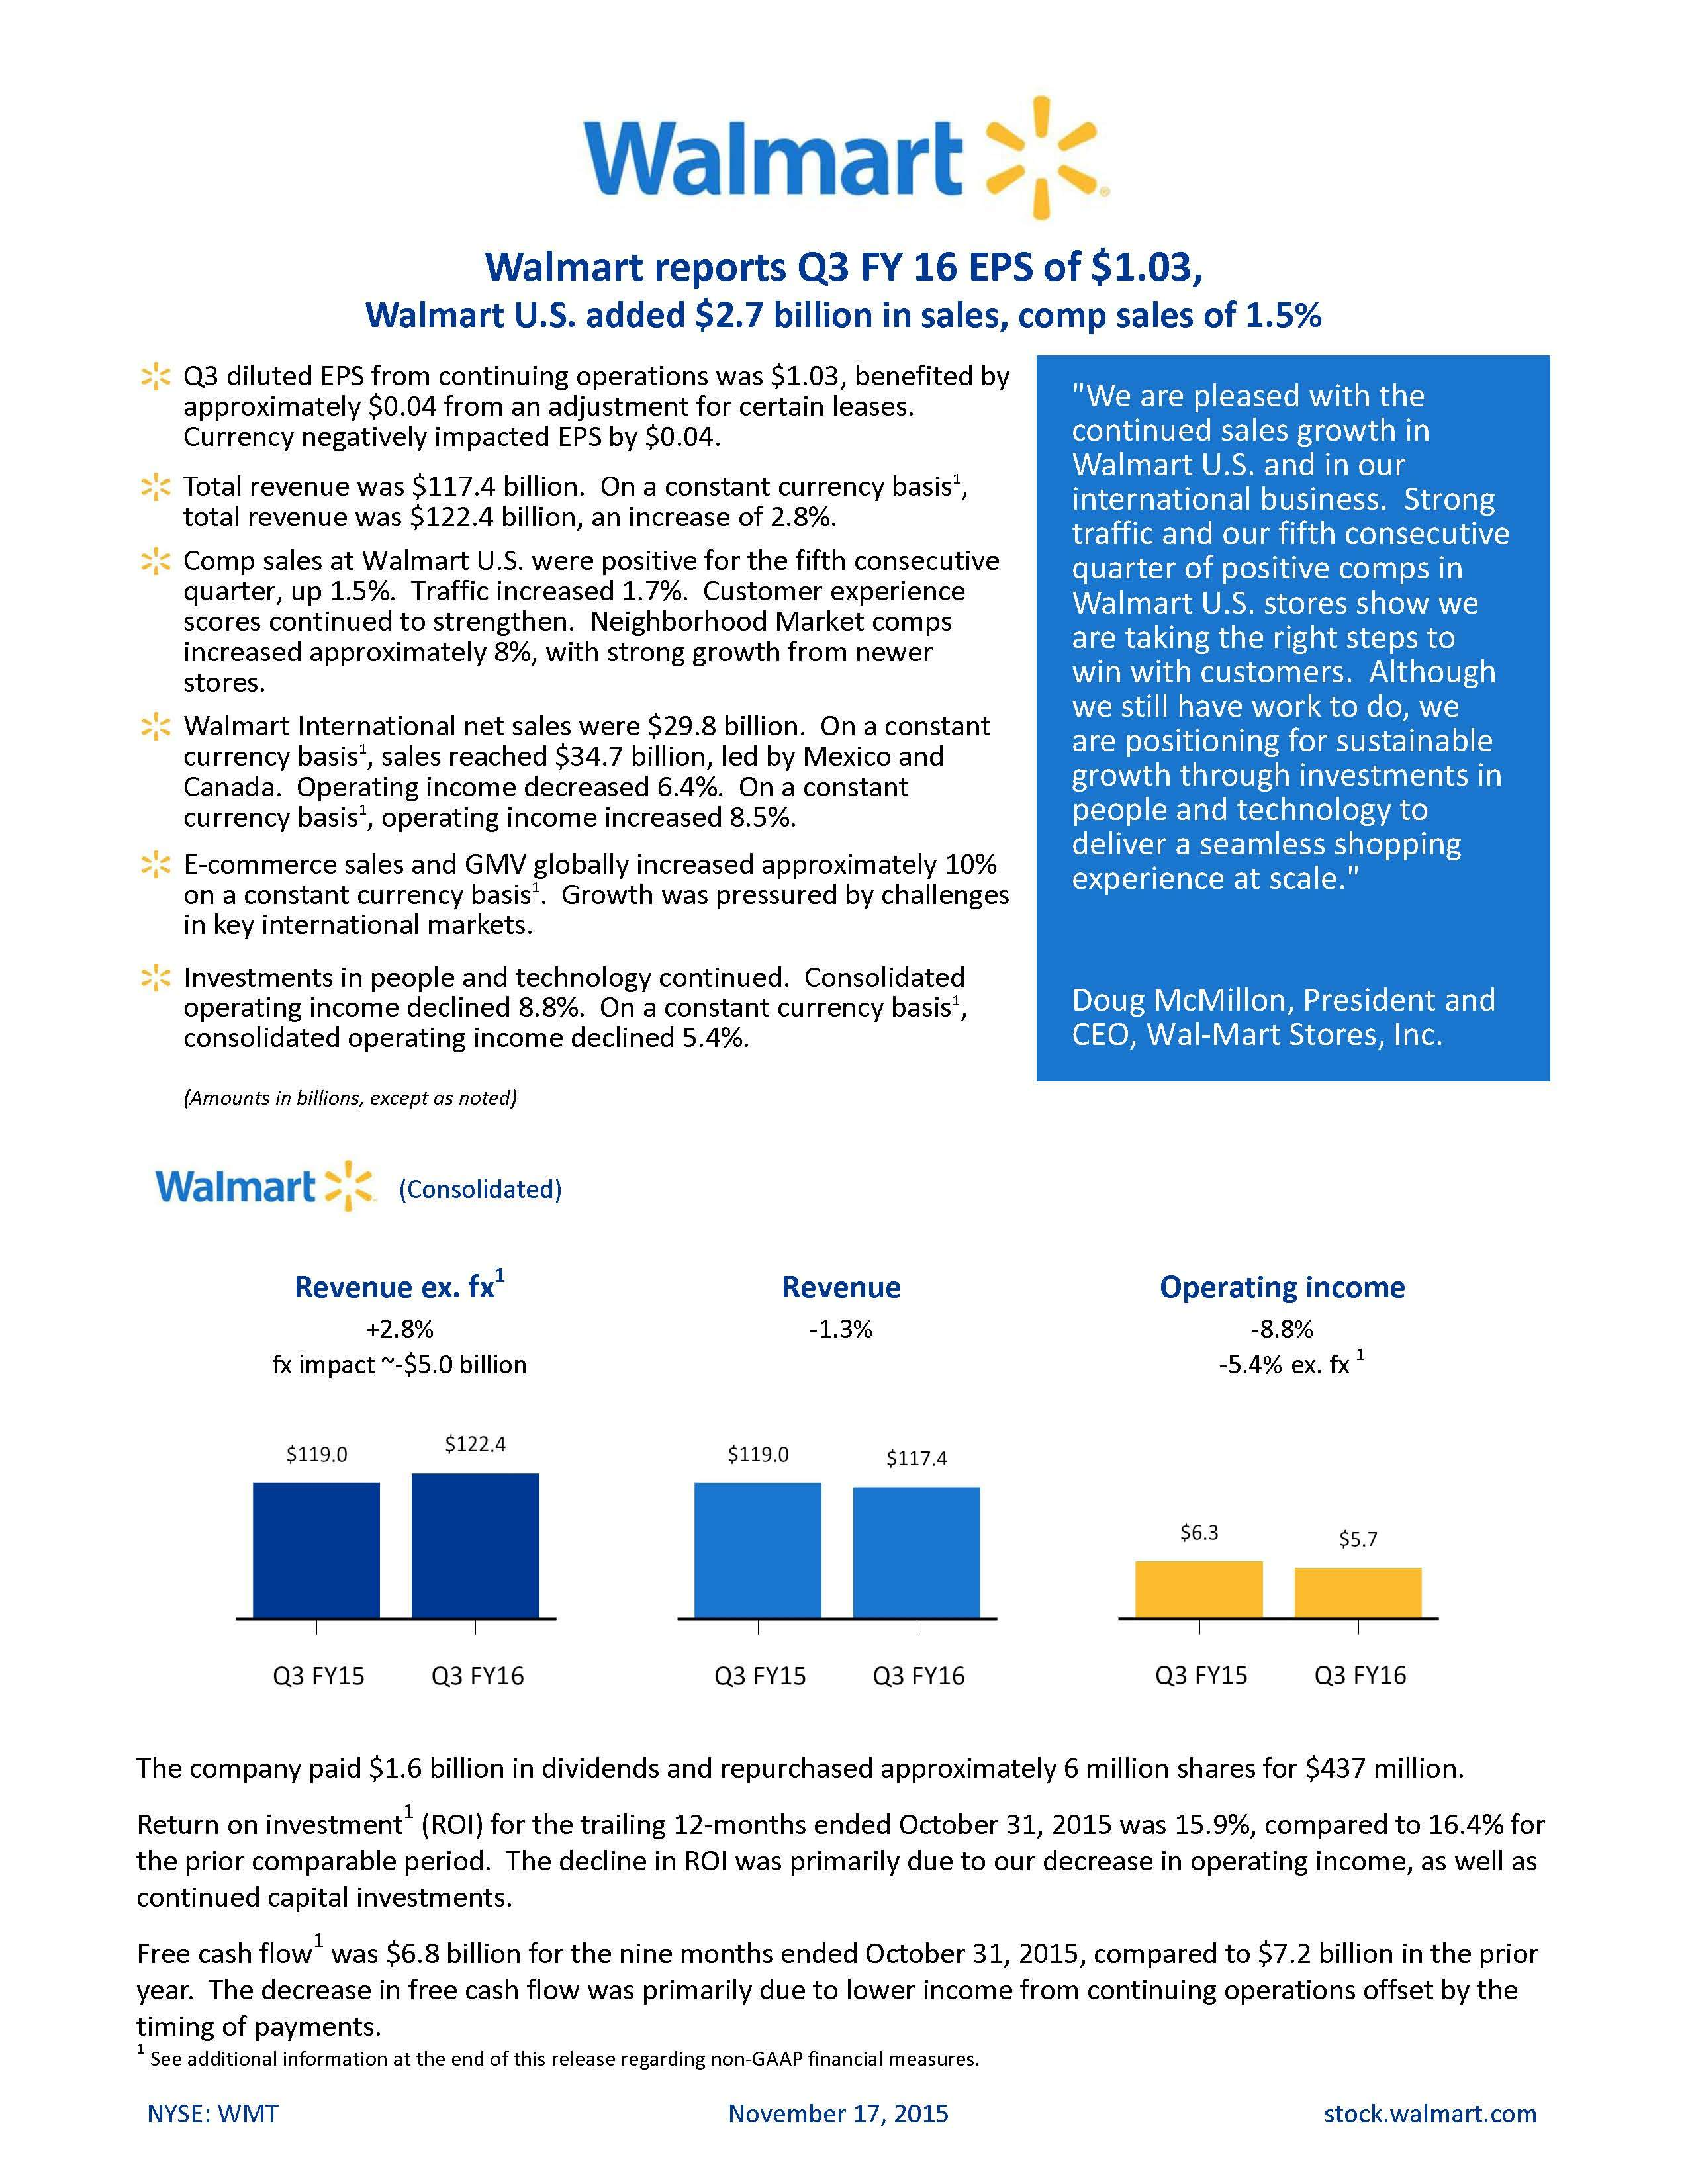 How to get my win number from walmart - Walmart Reports Q3 Fy 16 Eps Of 1 03 Walmart U S Added 2 7 Billion In Sales Comp Sales Of 1 5 Business Wire